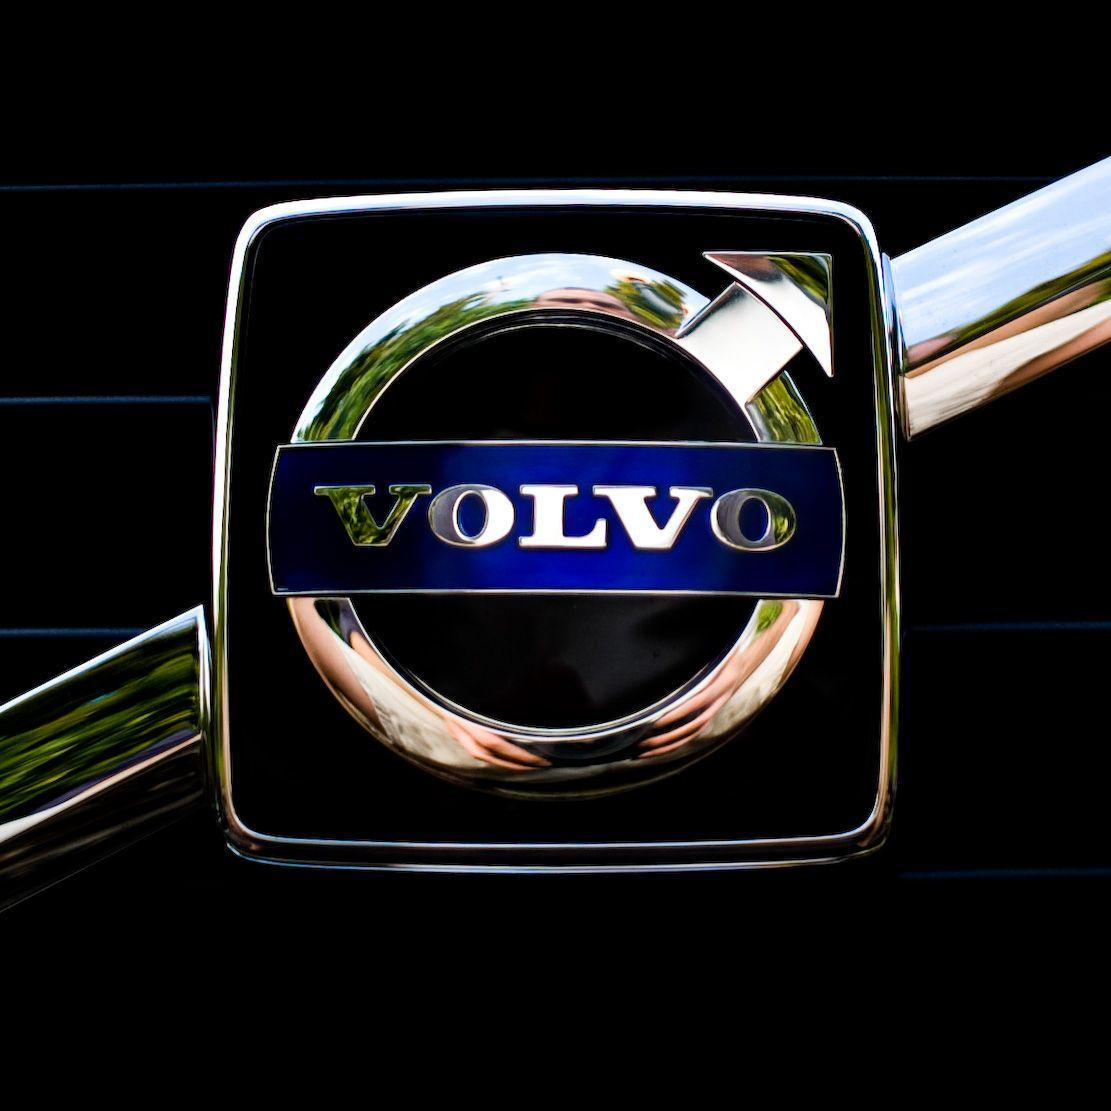 Volvo Logo Wallpapers High Quality Resolution